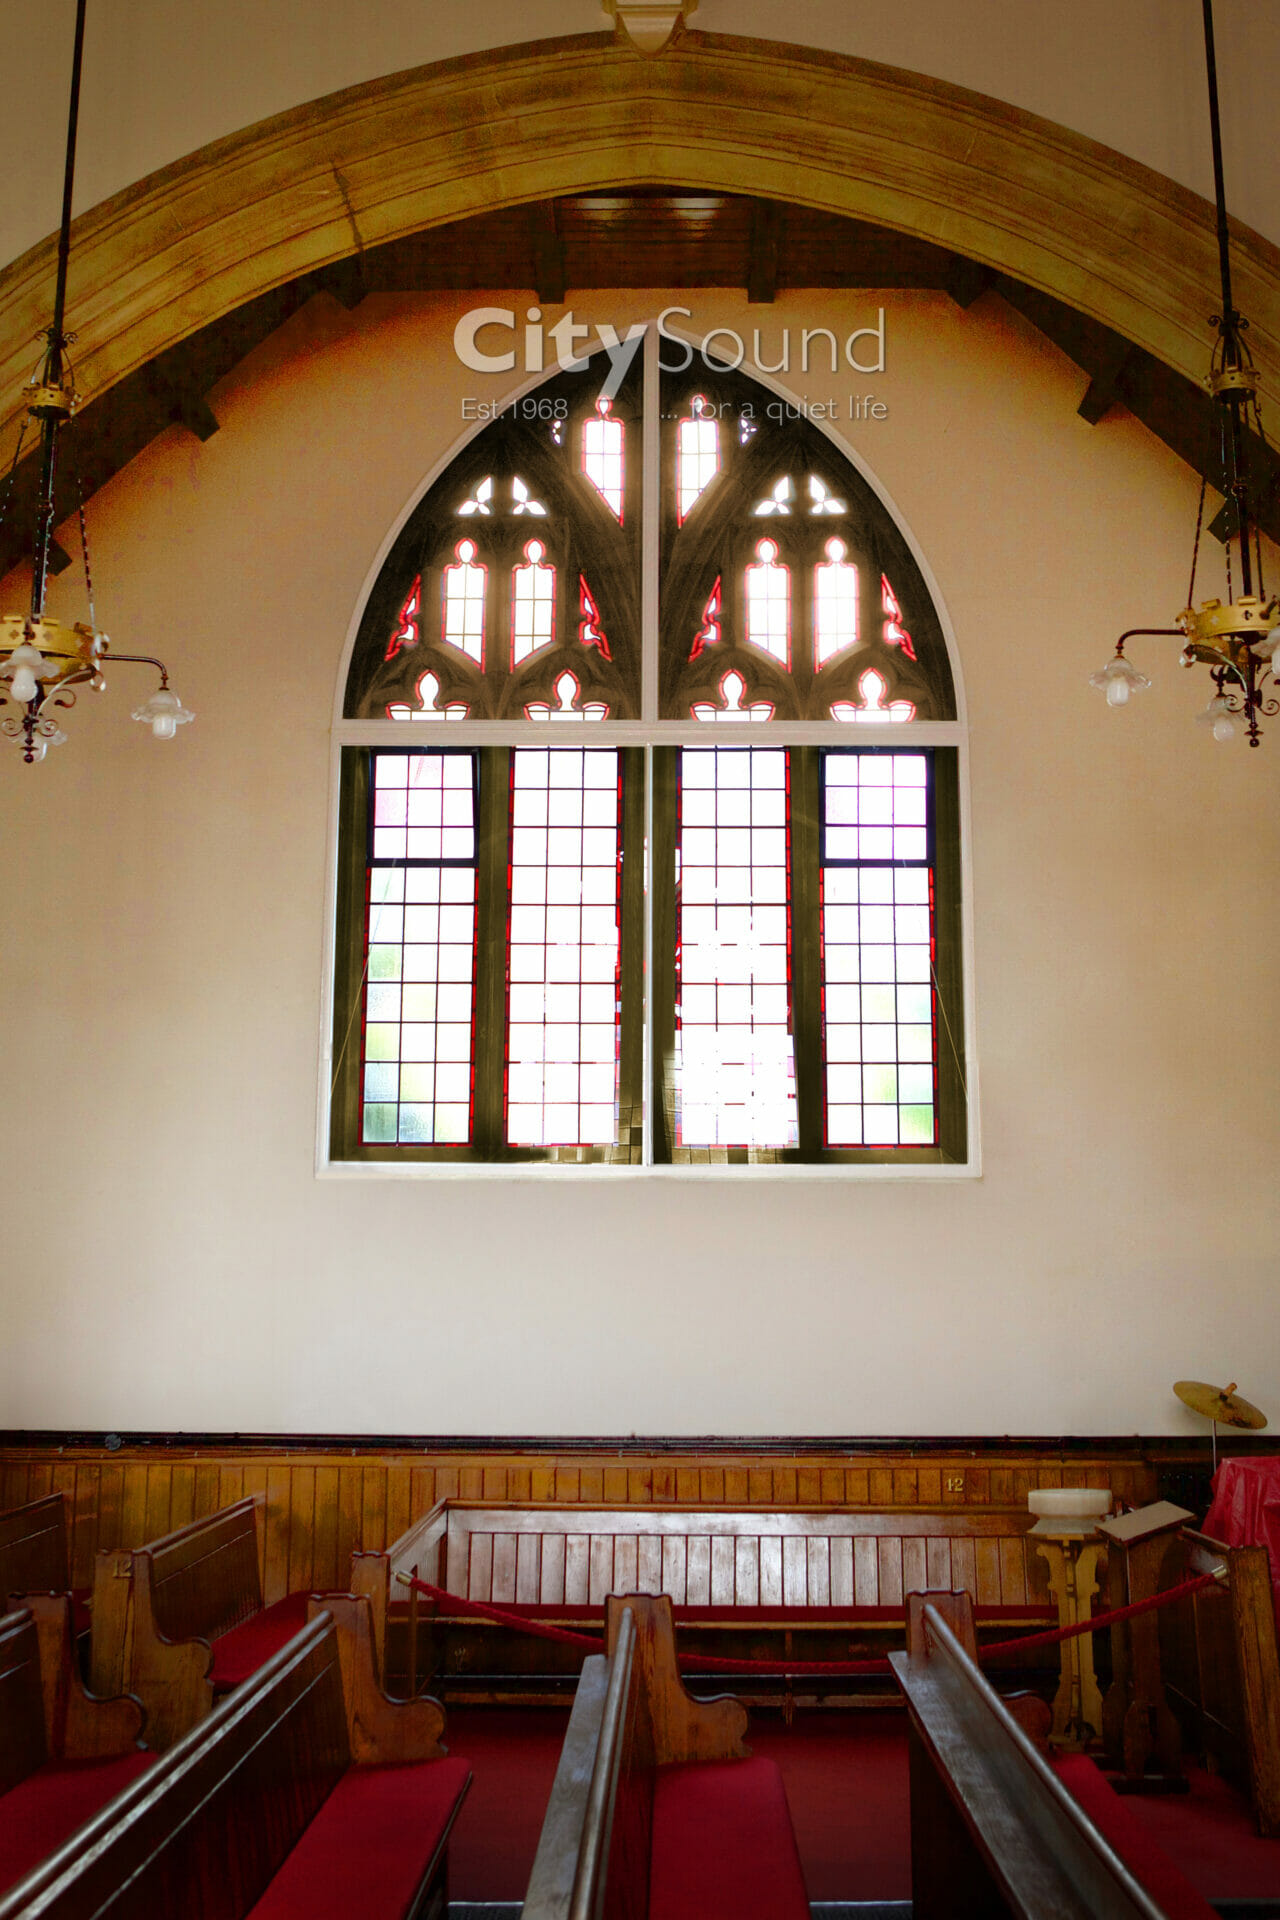 20. Sliding windows and gothic arches done in a Church. For thermal insulation (London)